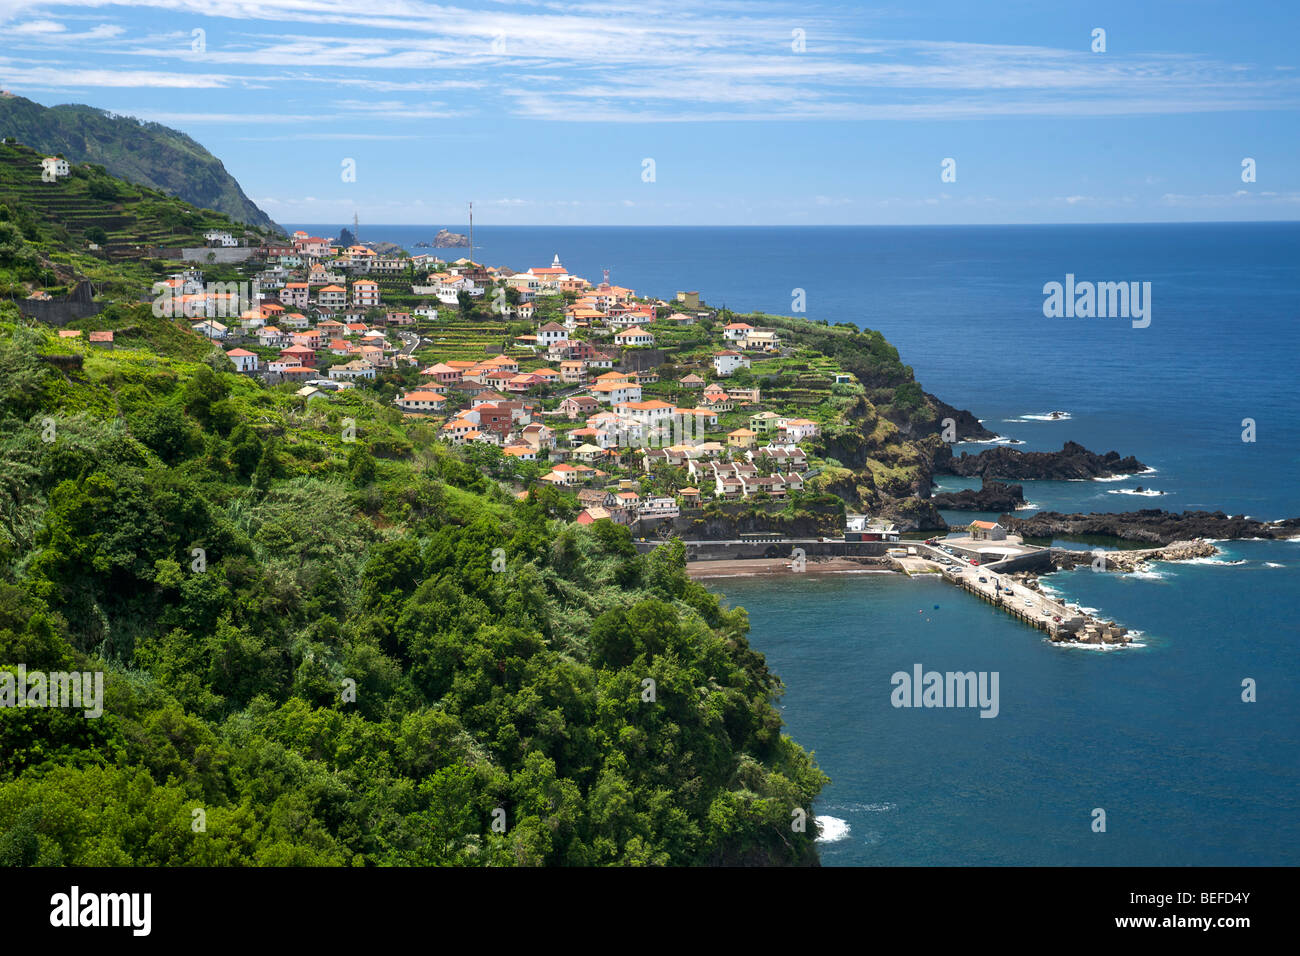 The village of Seixal on the coast of Madeira. - Stock Image